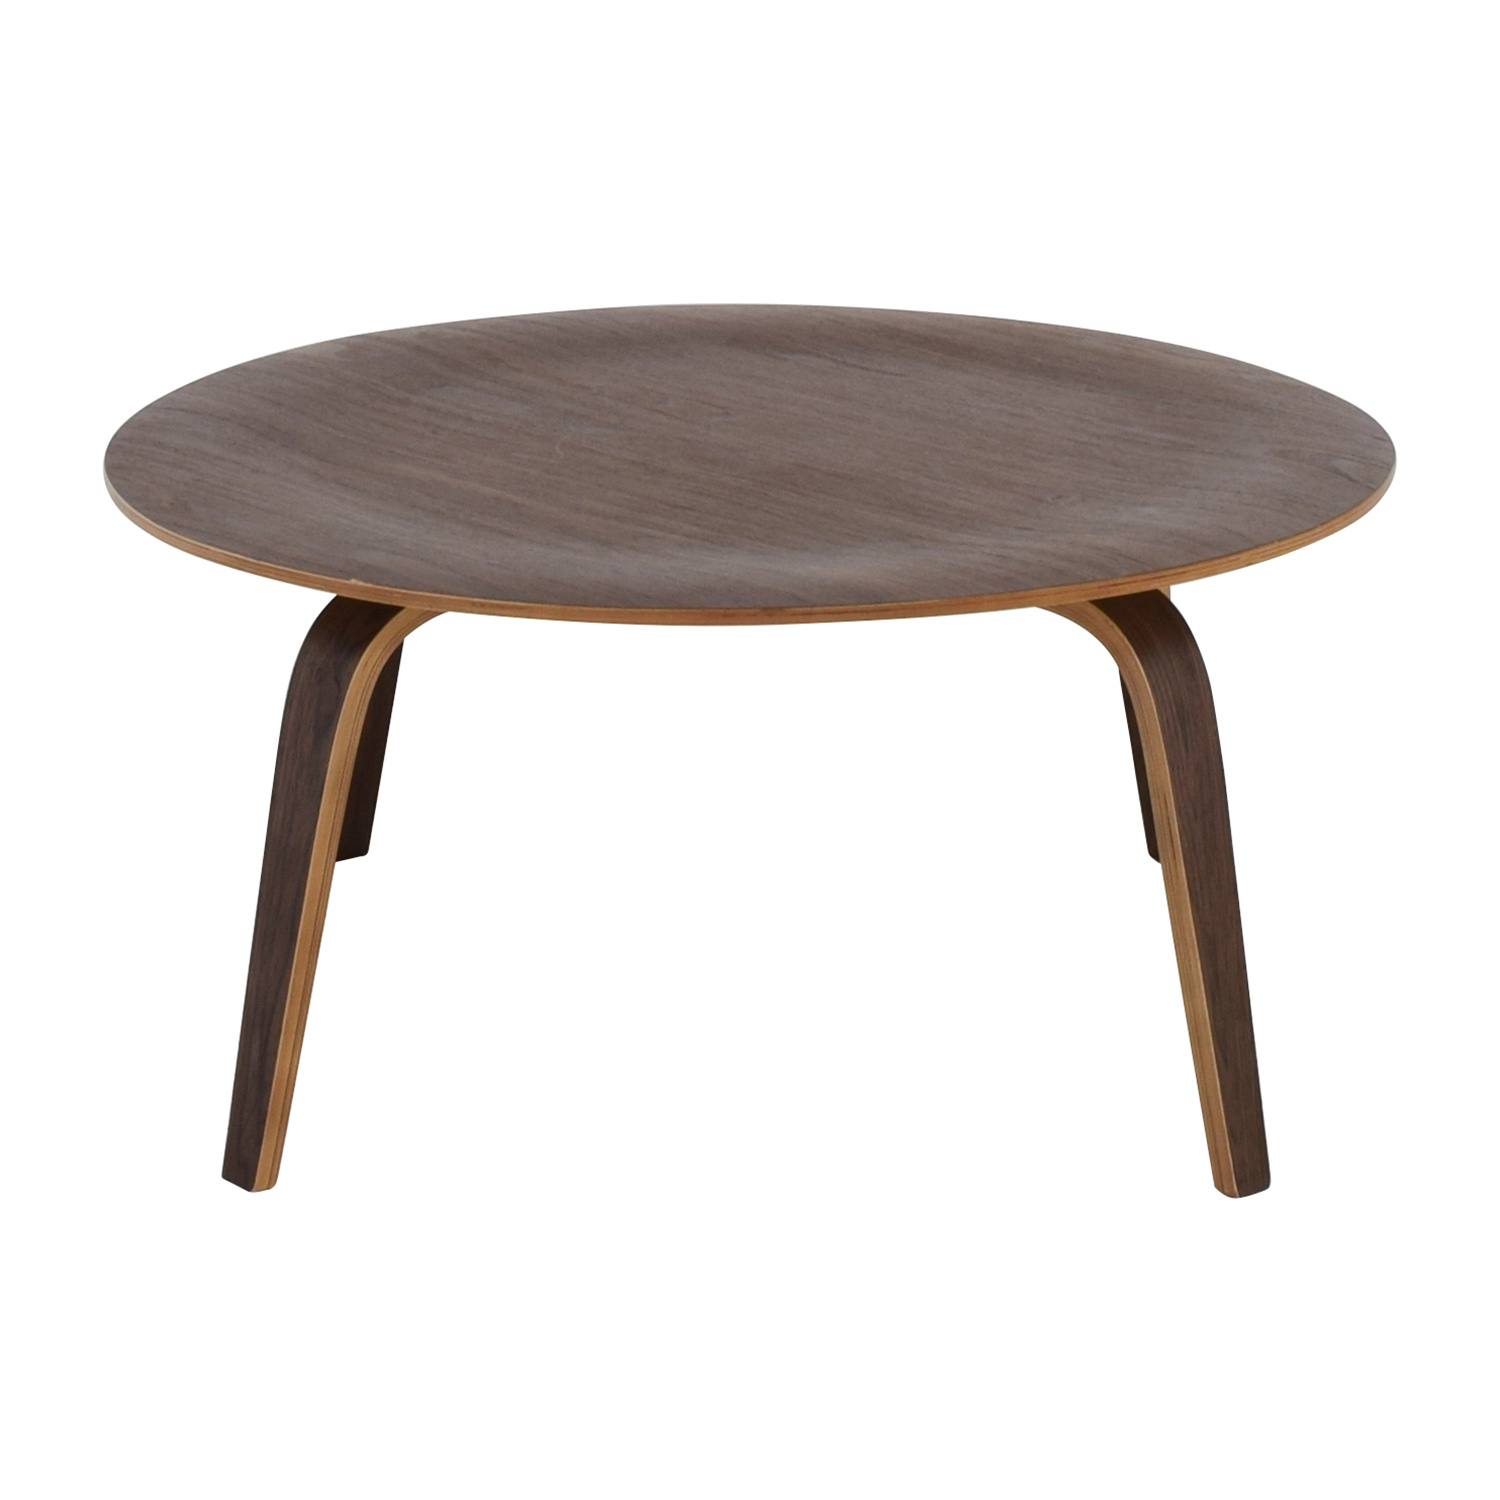 Modway Modway Round Coffee Table coupon